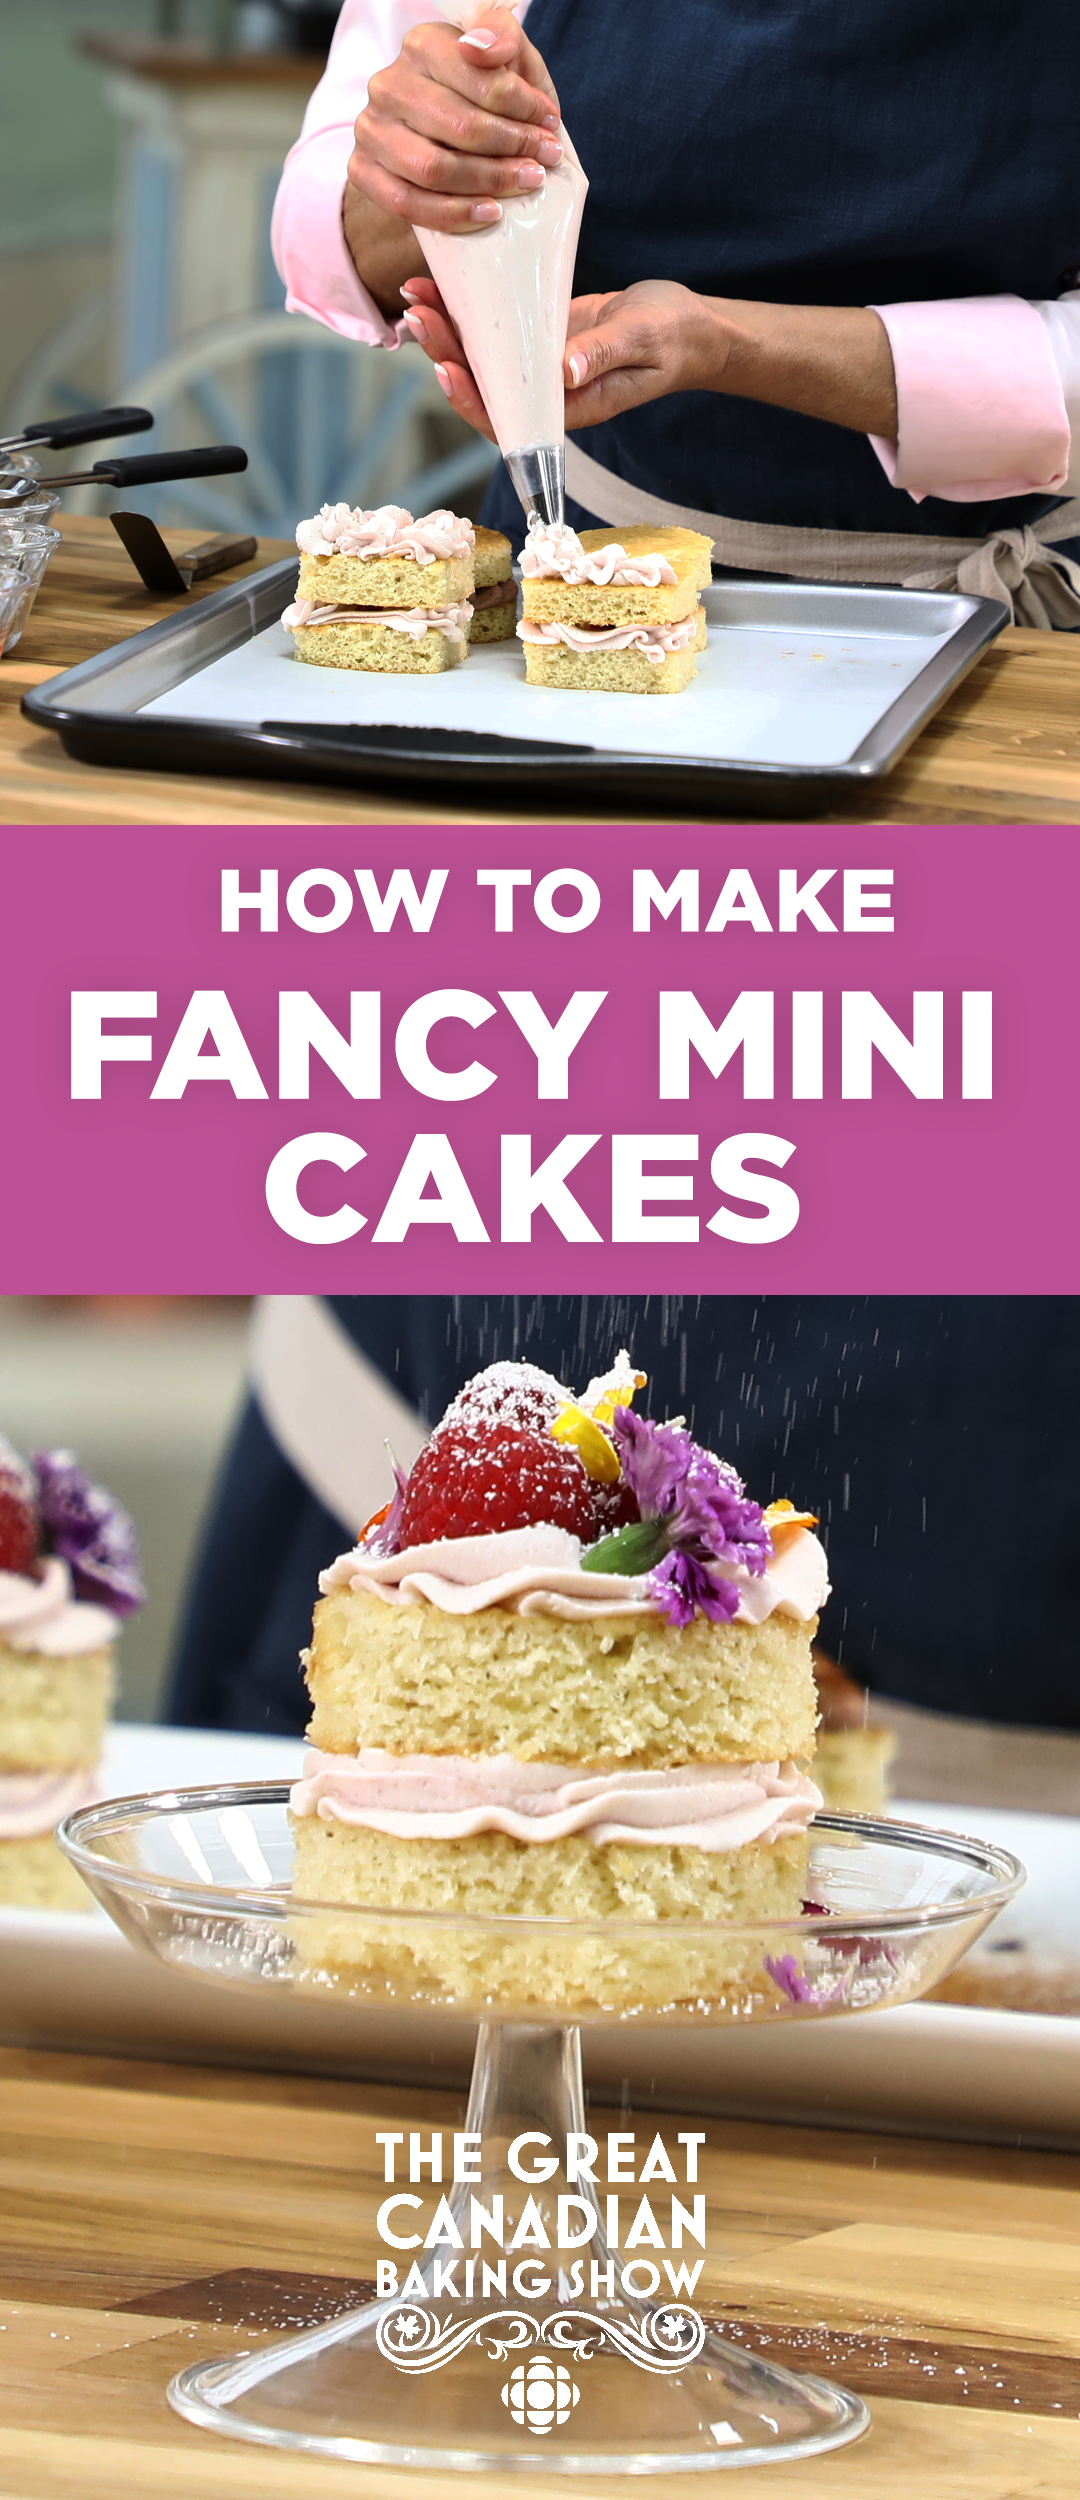 How to create Fancy Mini Cakes Recipe (With images